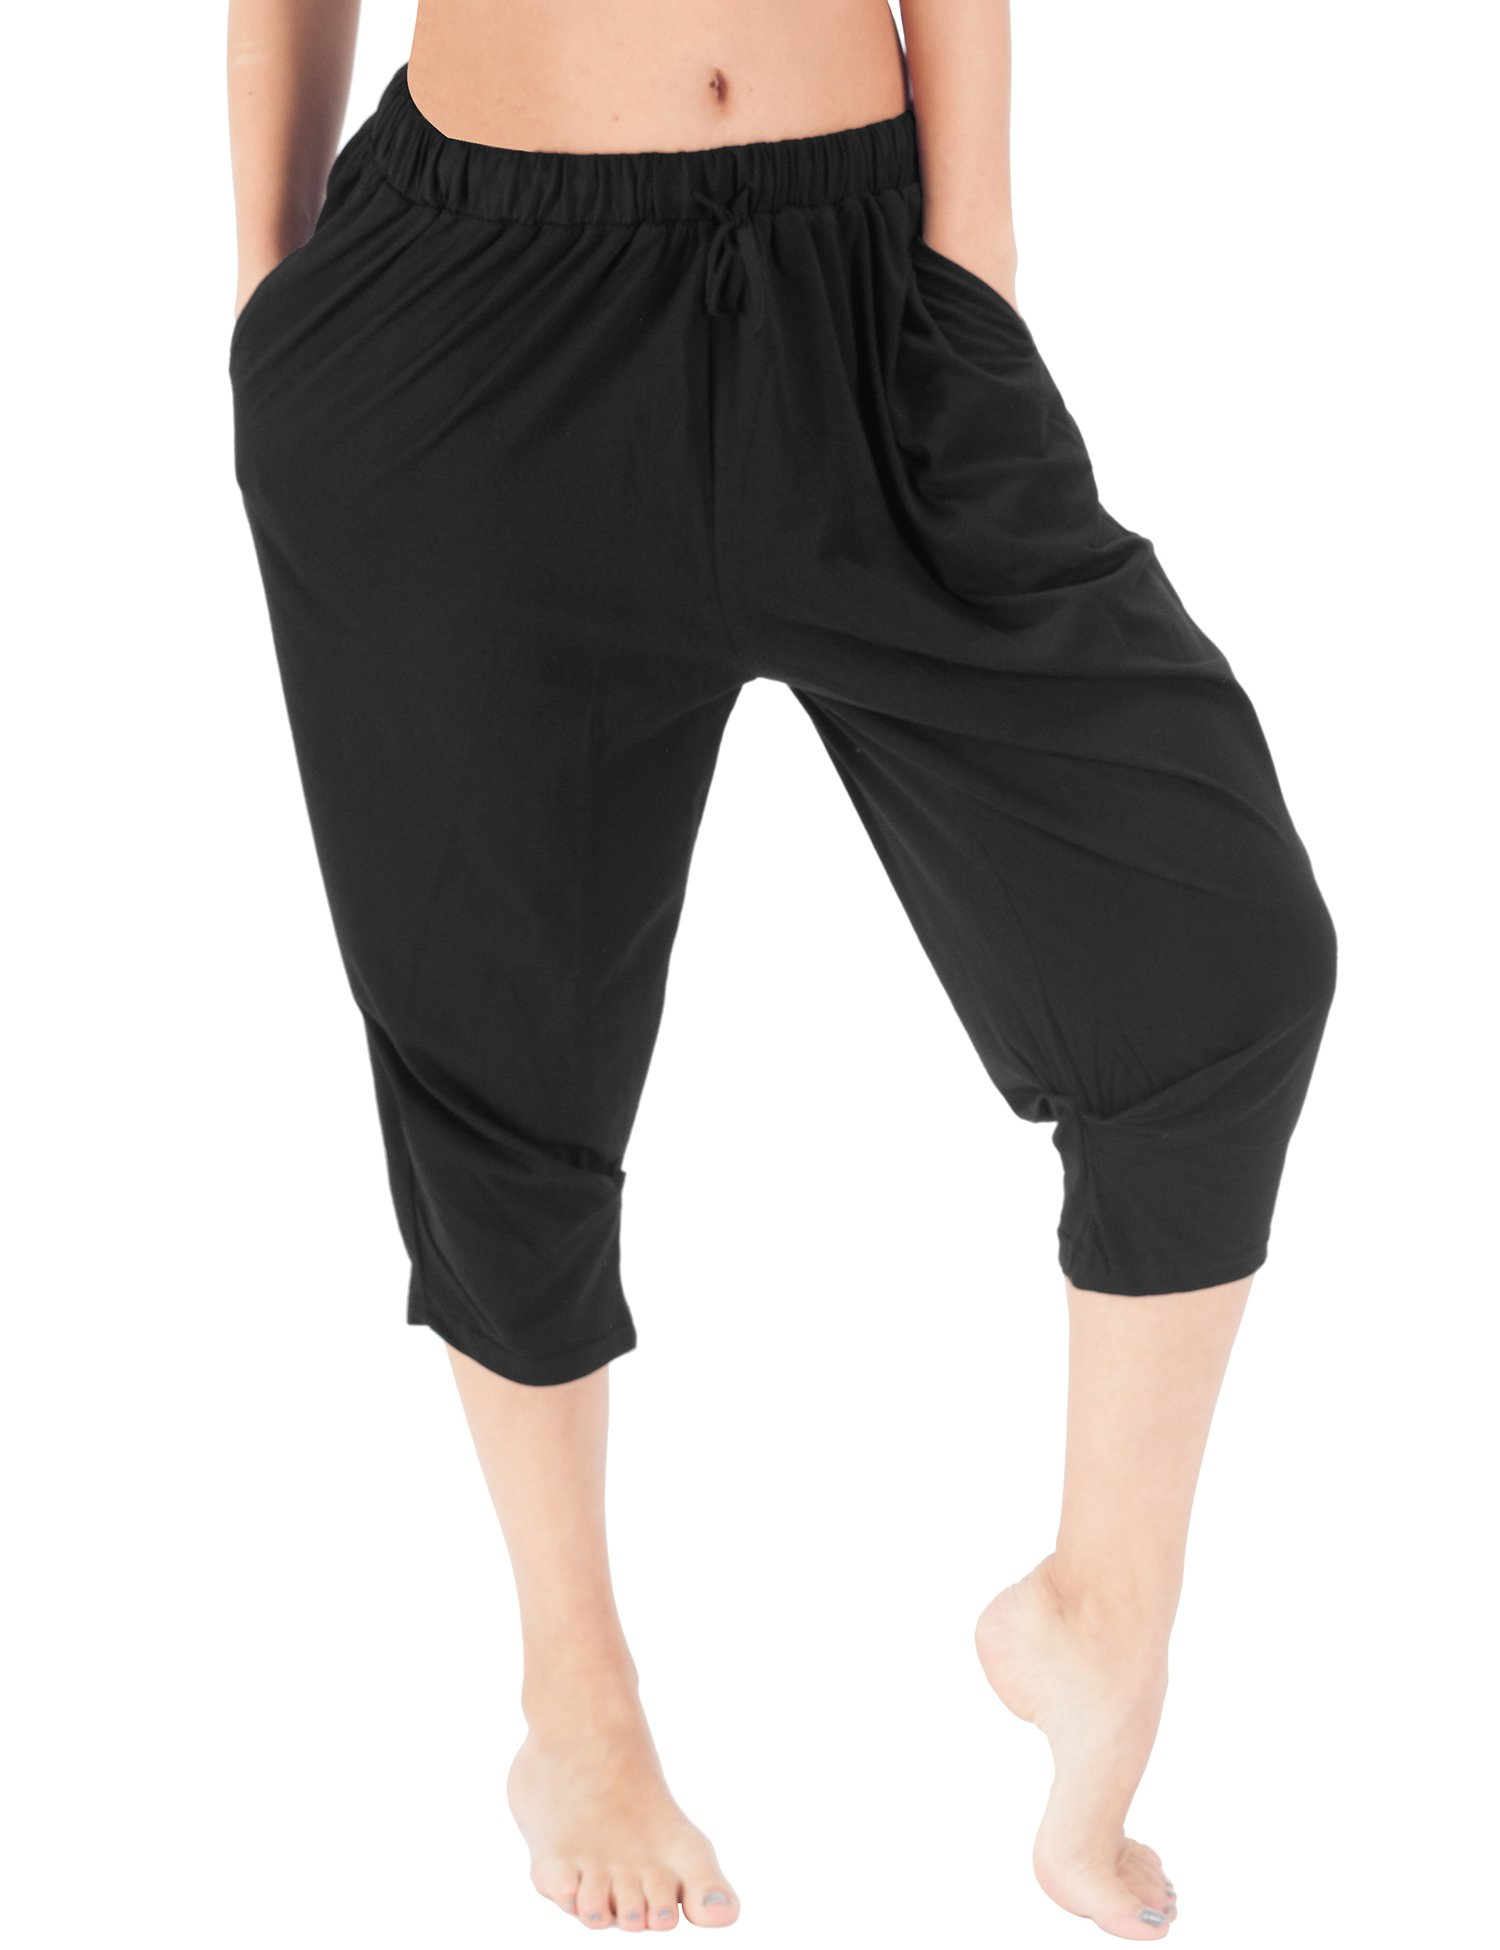 WEWINK CUKOO Women Cotton Pajama Capri Pants Cropped Lounge Pants Pockets Harem Pants (M=US 8-10, Black)